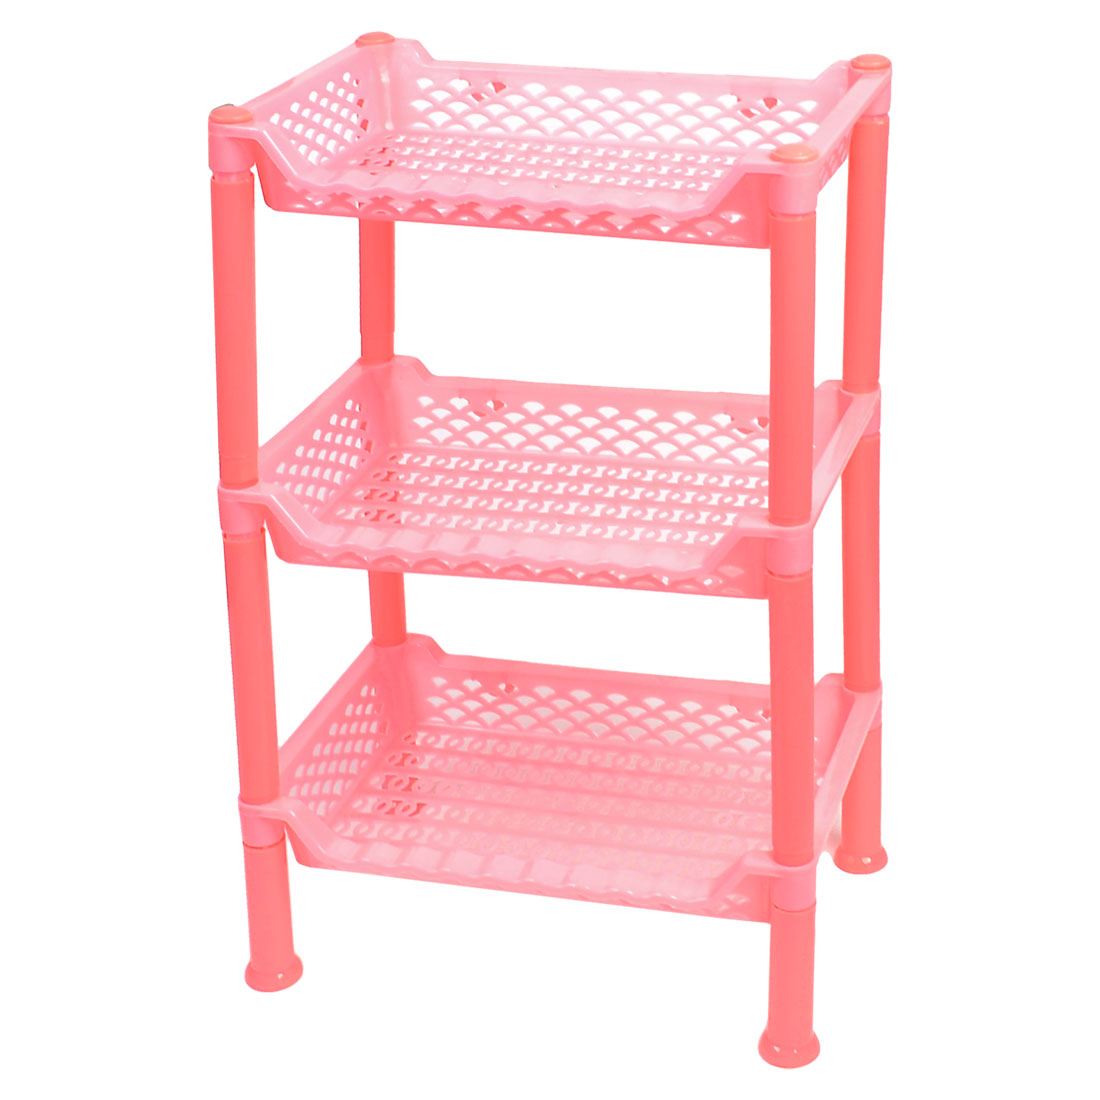 Houeshold Detachable Pink Plastic 3 Layers Shelf Storage Rack Organizer